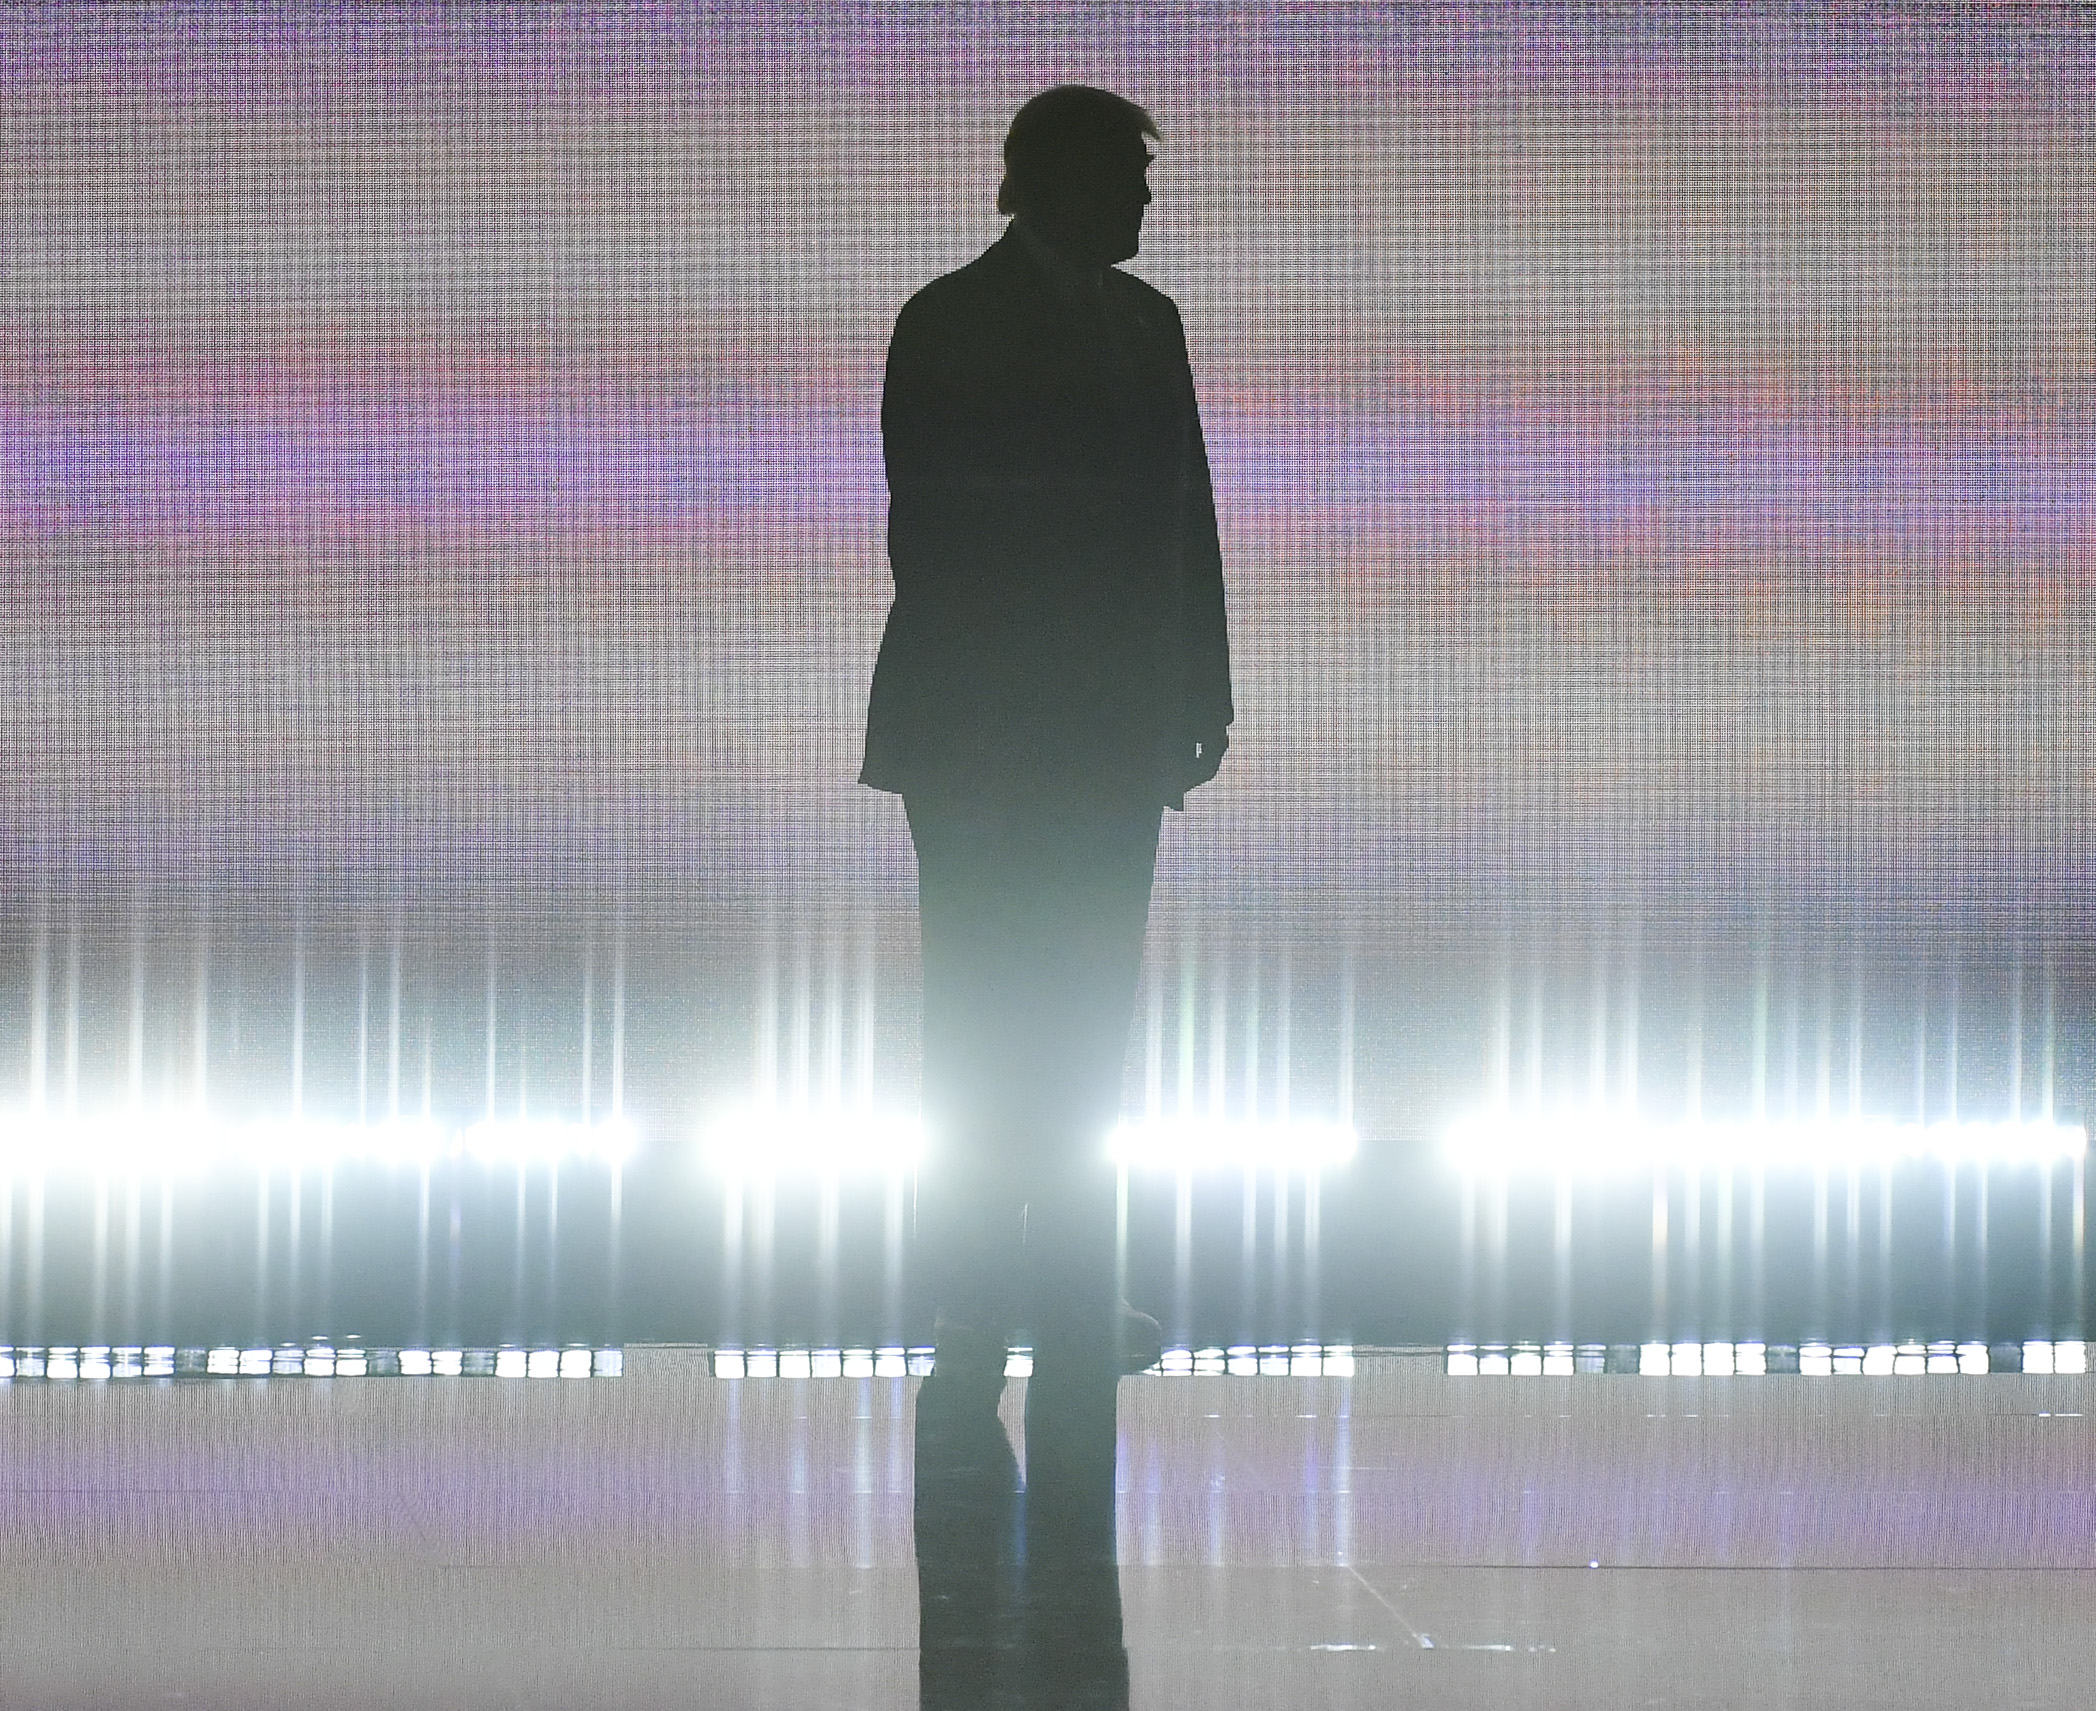 Donald Trump arrives on stage to introduce his wife Melania during the Republican National Convention in Cleveland, Ohio, on July 18, 2016.